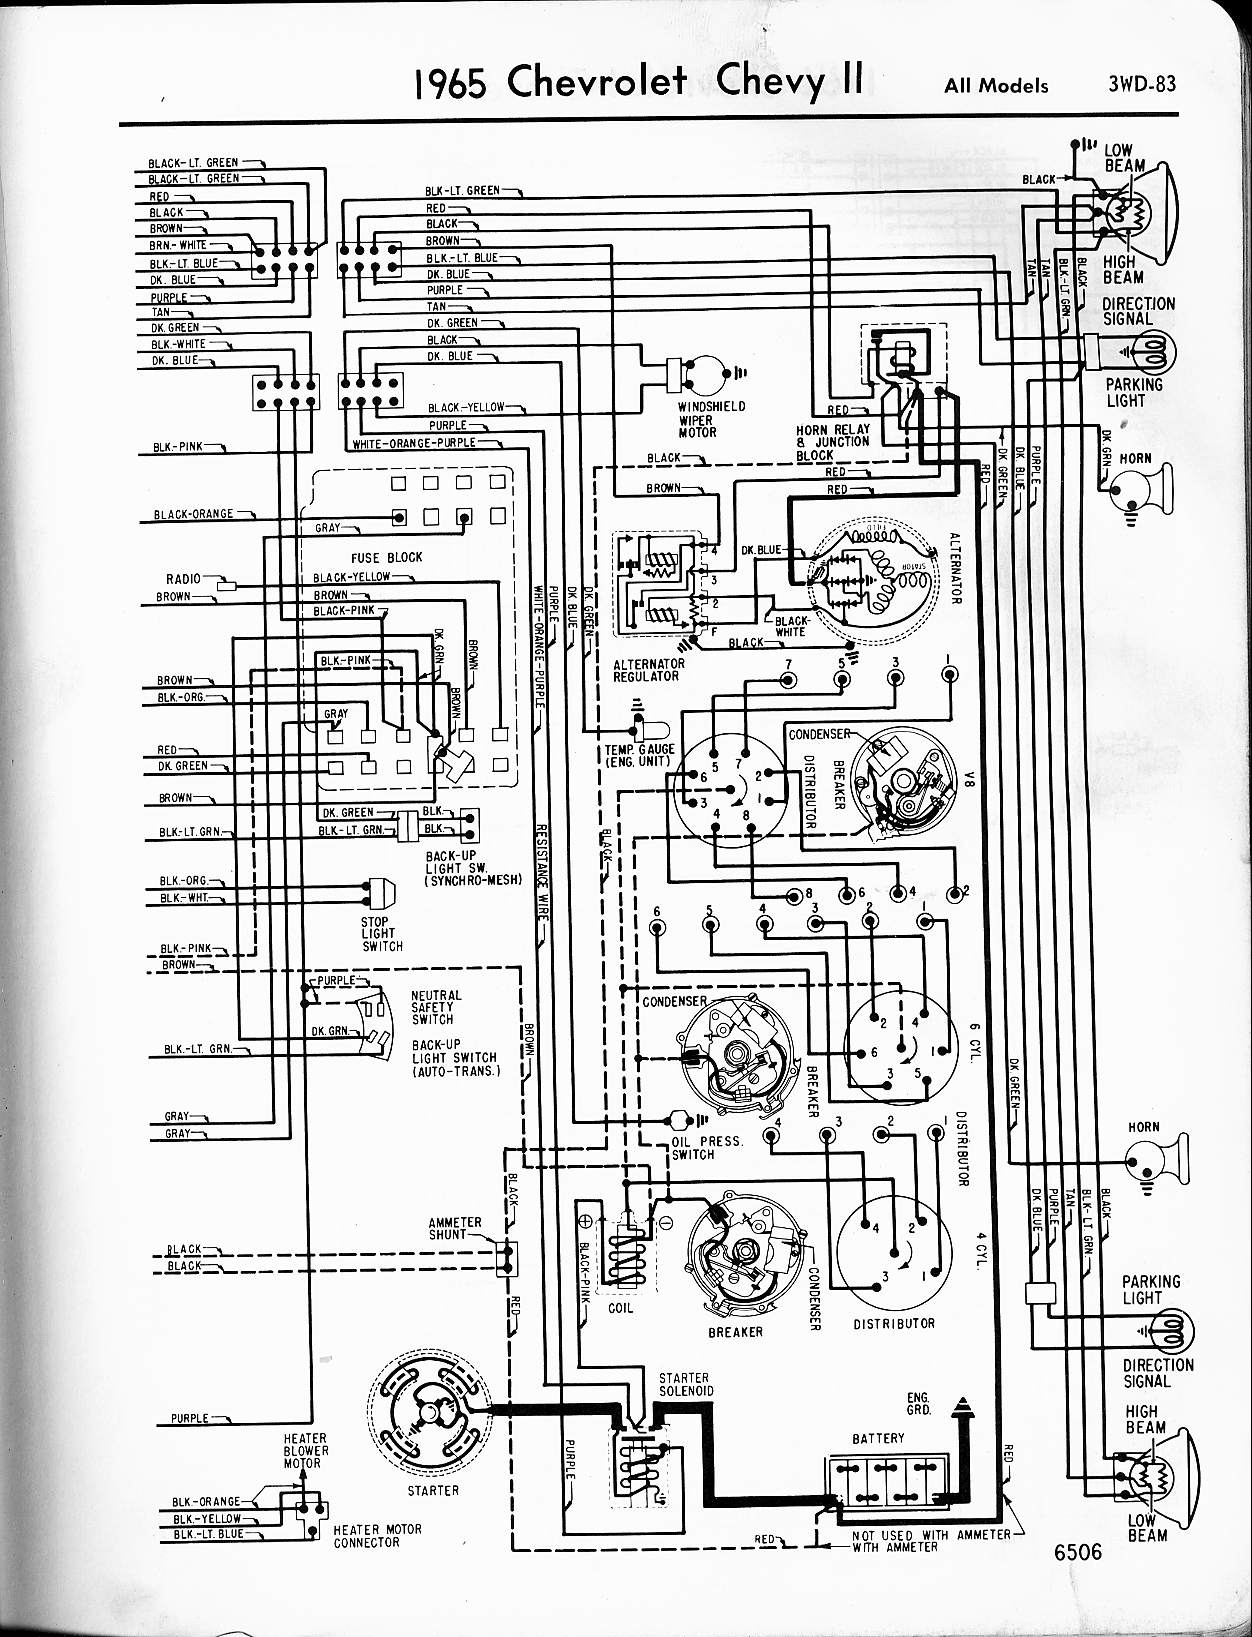 Chevy V6 Ignition Wiring Schematics Diagrams Car Diagram 1974 Chevrolet Impala Block And Schematic U2022 Rh Lazysupply Co 1986 Crusader 270